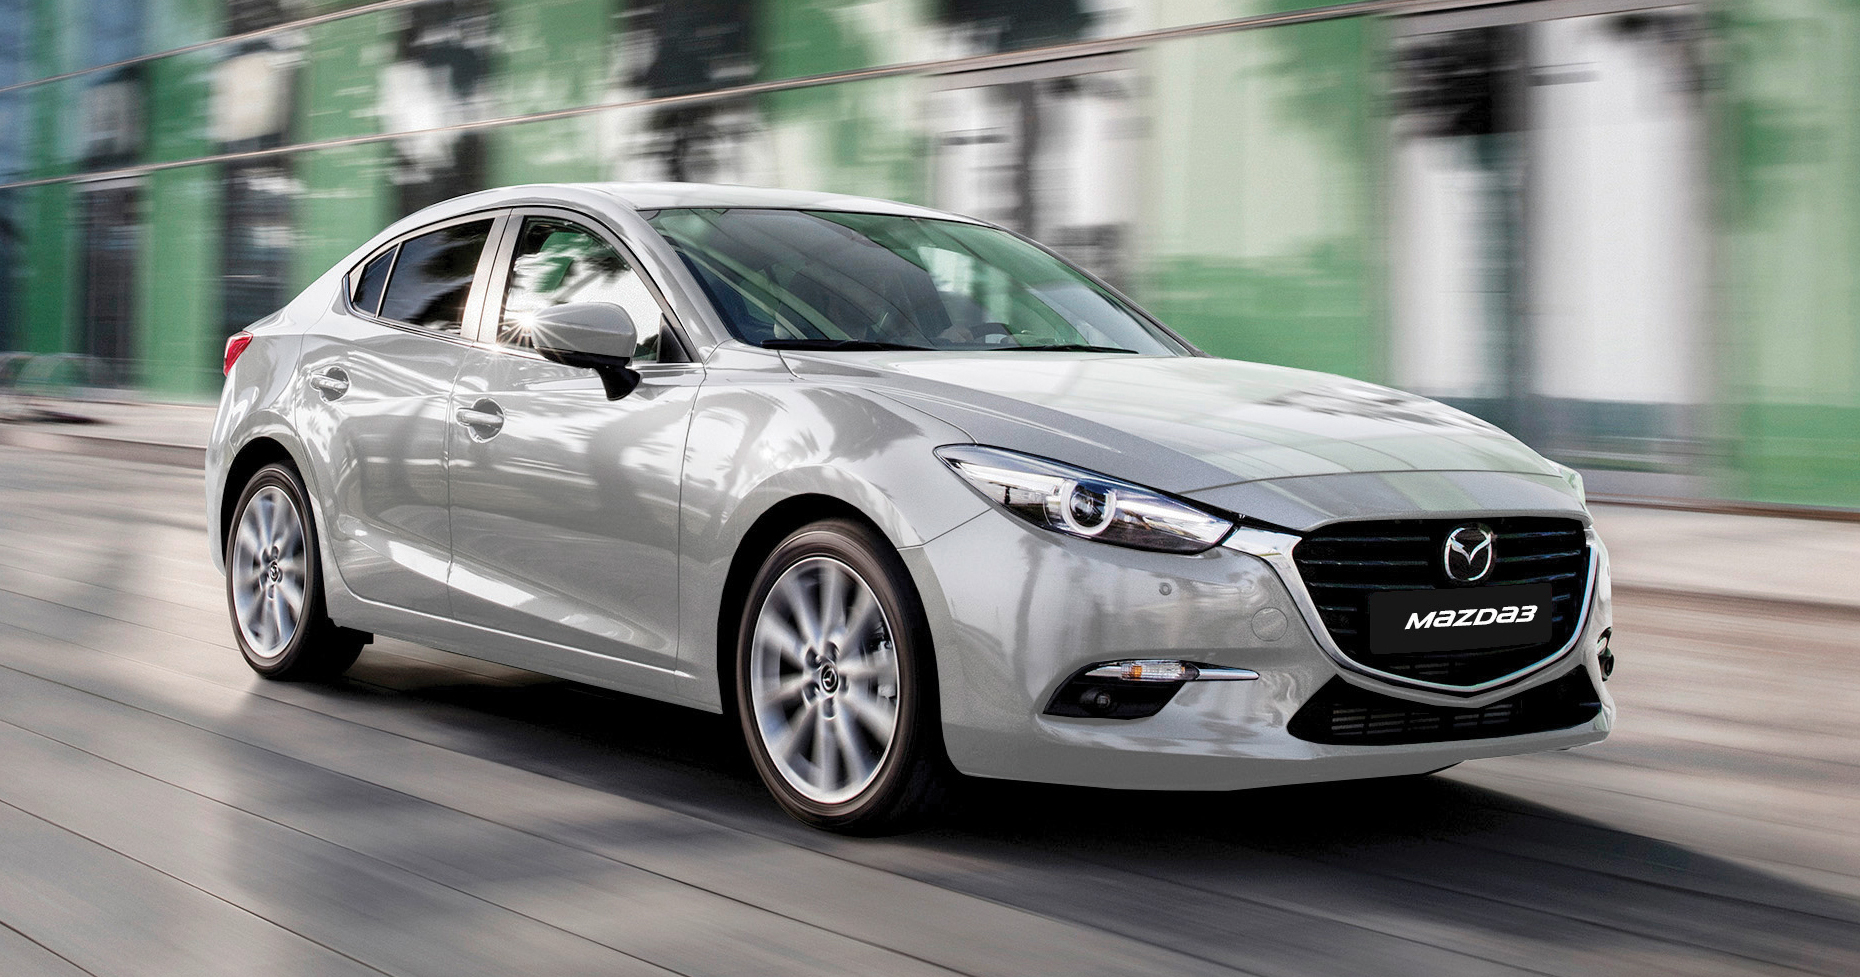 2017 Mazda 3 Facelift Launched In Malaysia Now With G Vectoring Control Three Variants From Rm111k Paul Tan Image 651458